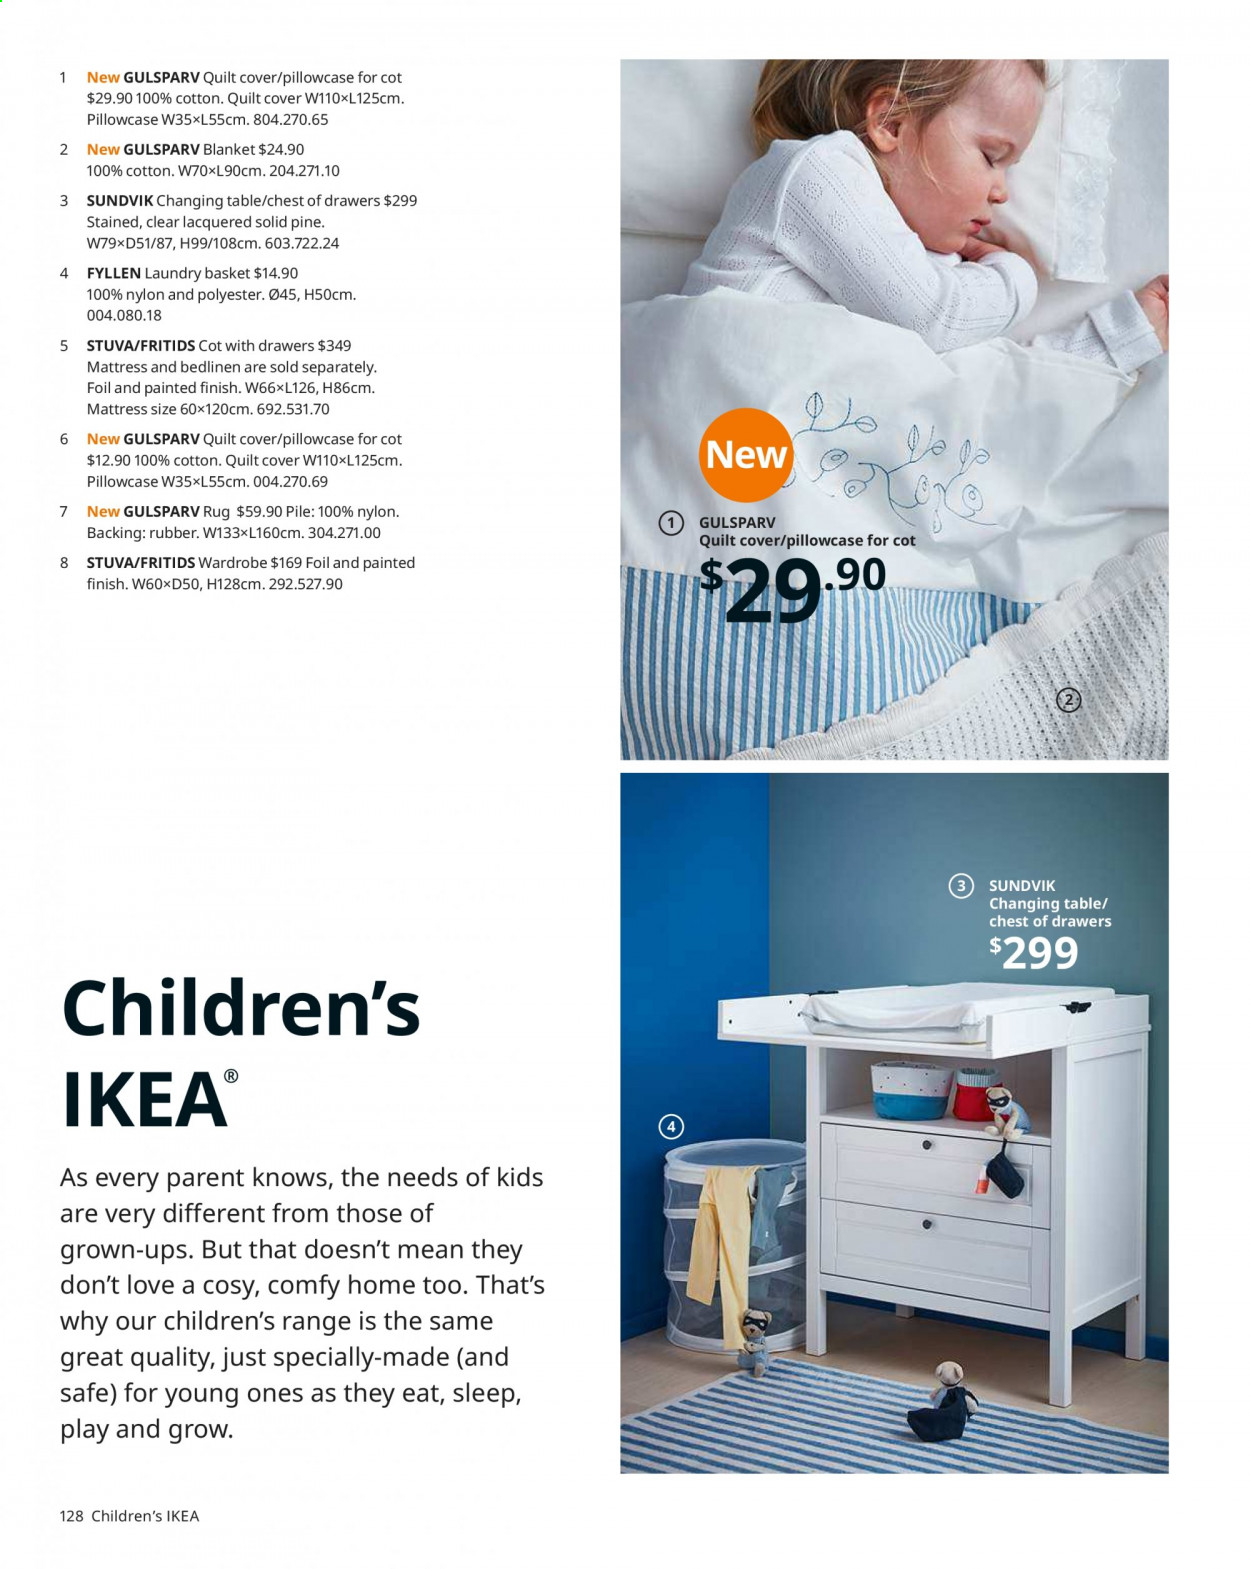 IKEA offer  - Sales products - basket, blanket, mattress, rug, table, wardrobe, pillowcases, quilt. Page 128.